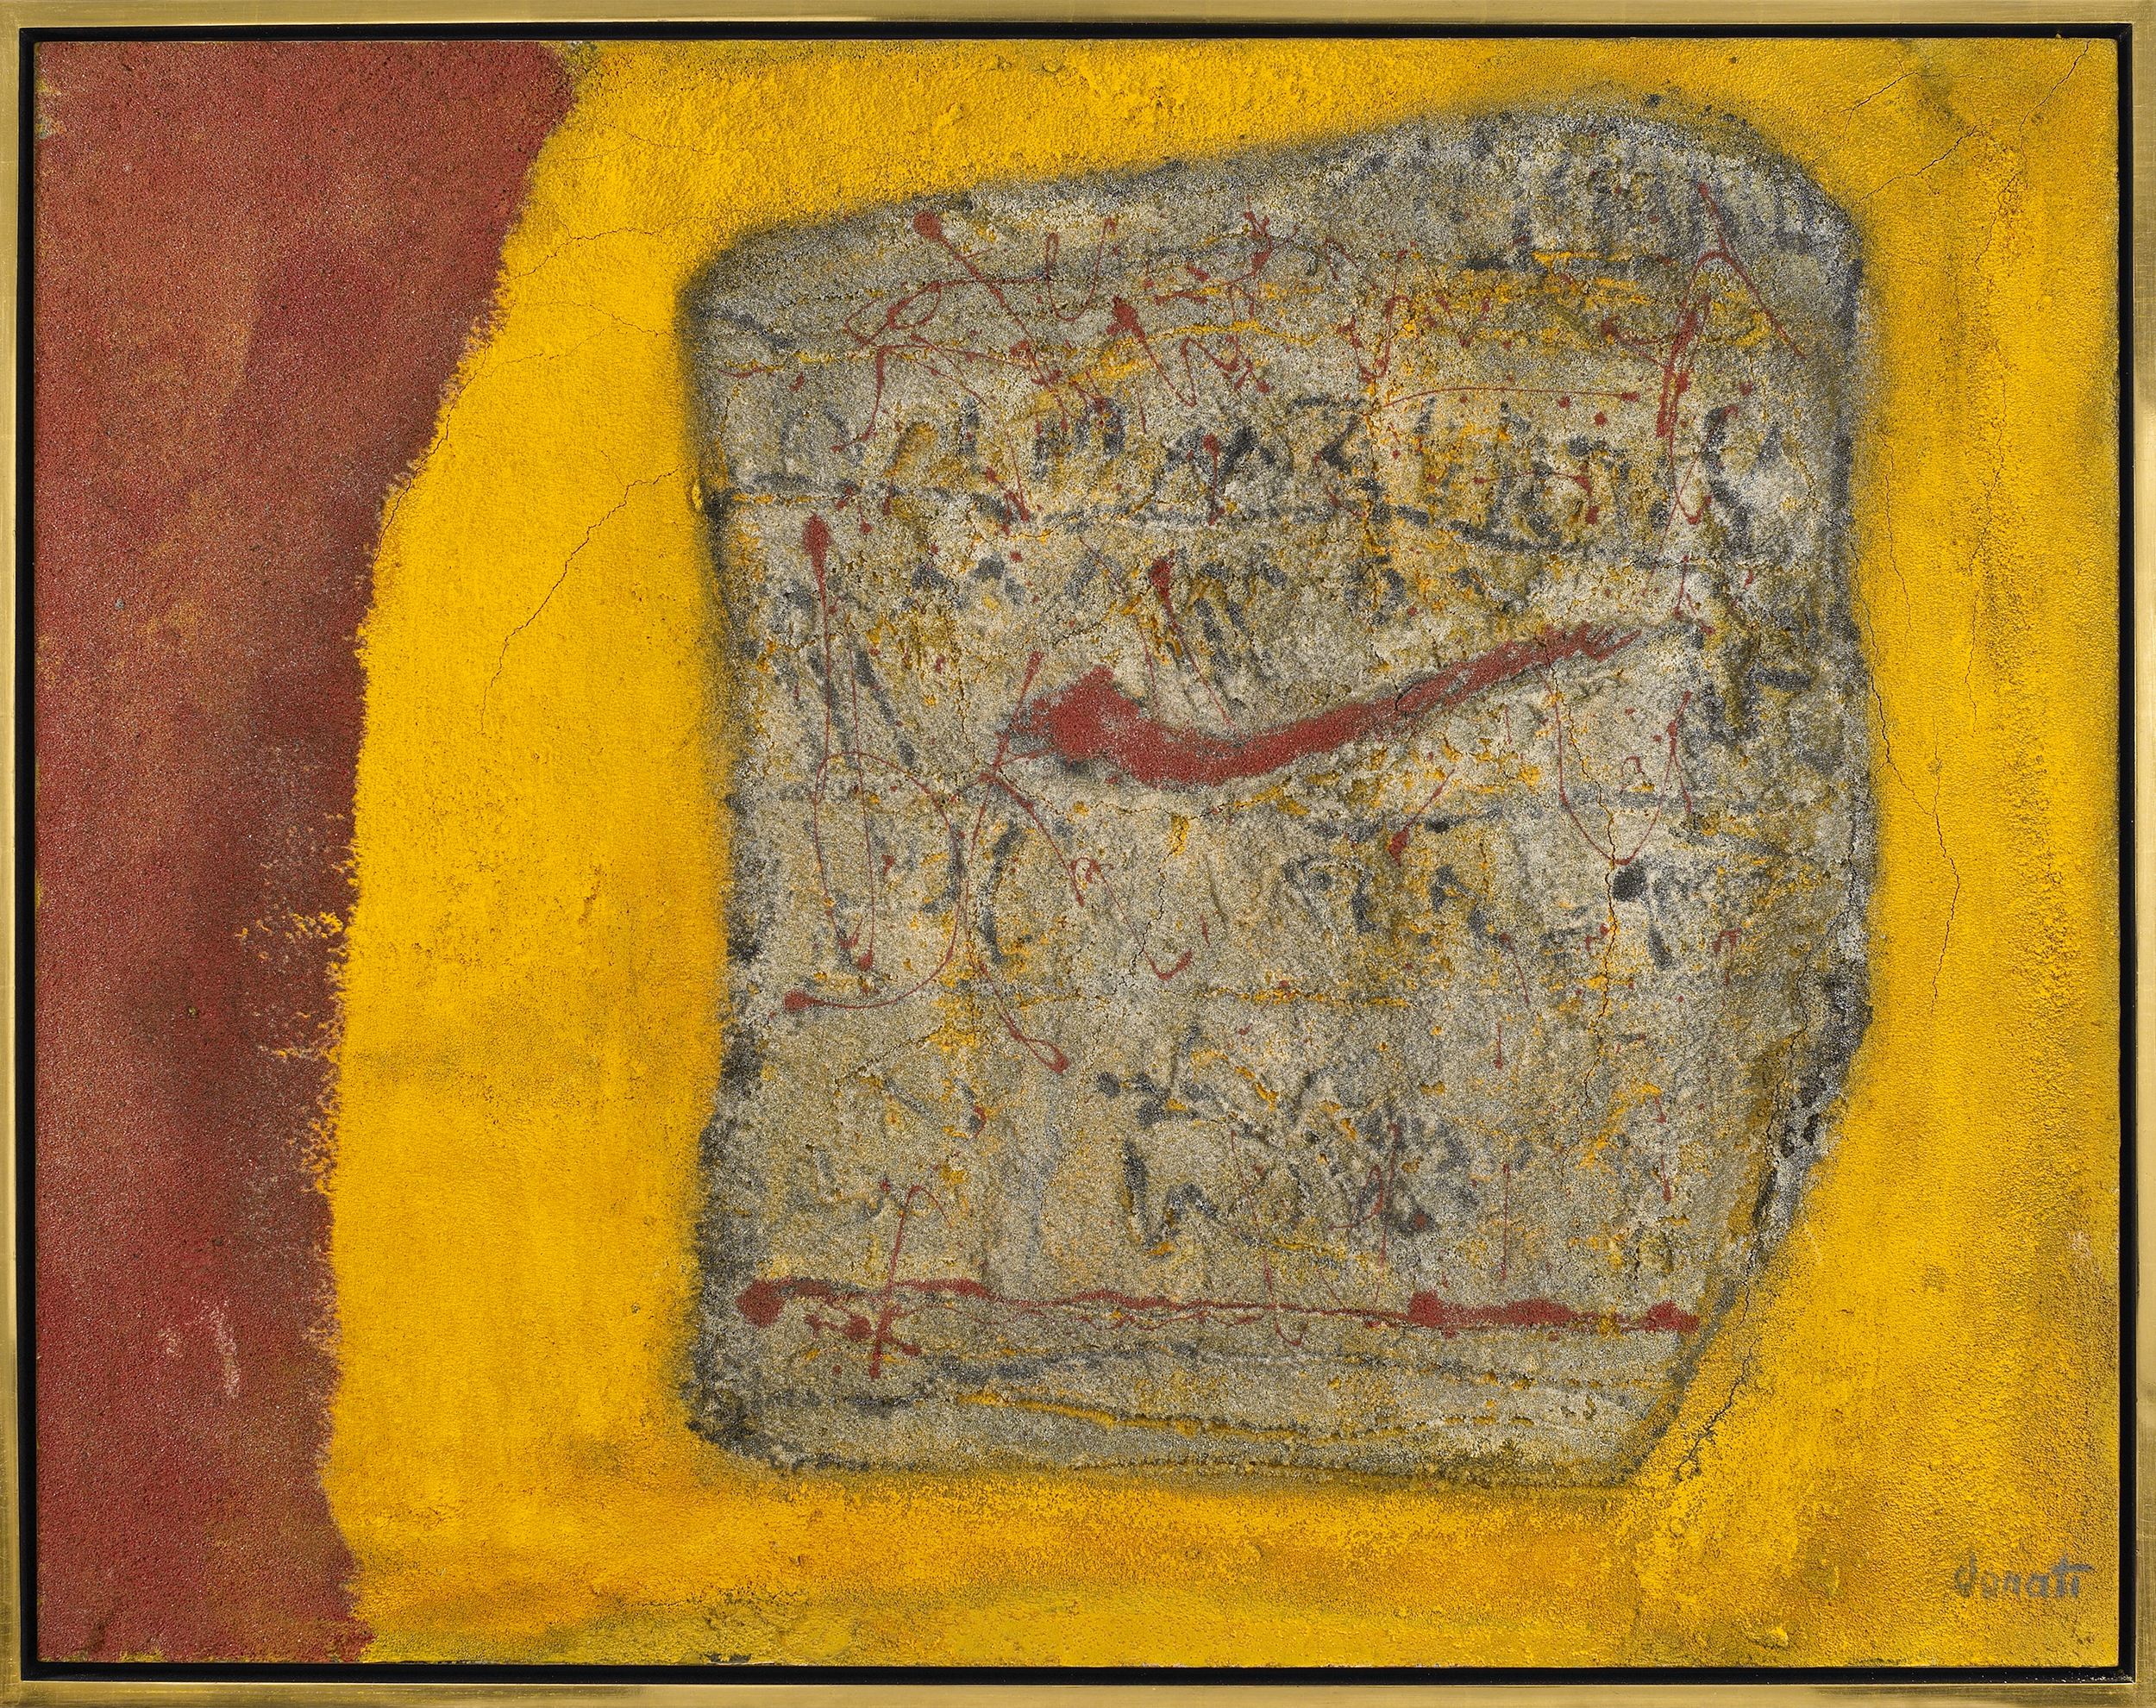 Fossil Series: 3001 BC  , Oil and sand on canvas, 1962, 35 x 45 inches